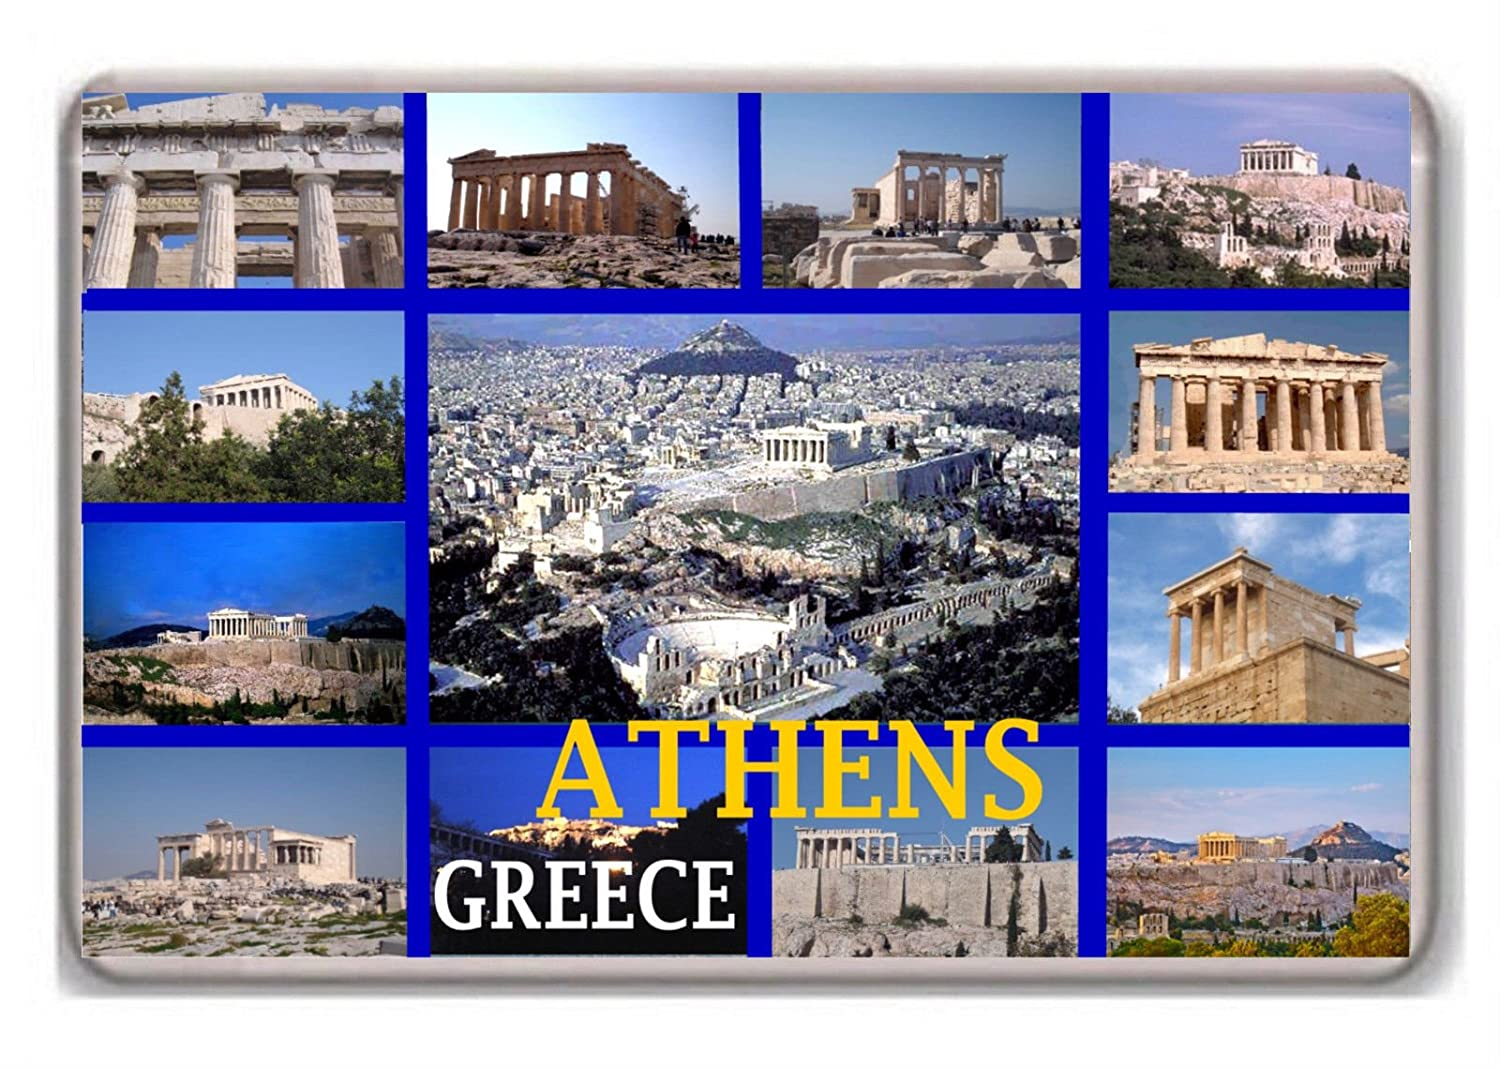 Athens Greece fridge magnet.!!!!!!! Photosiotas